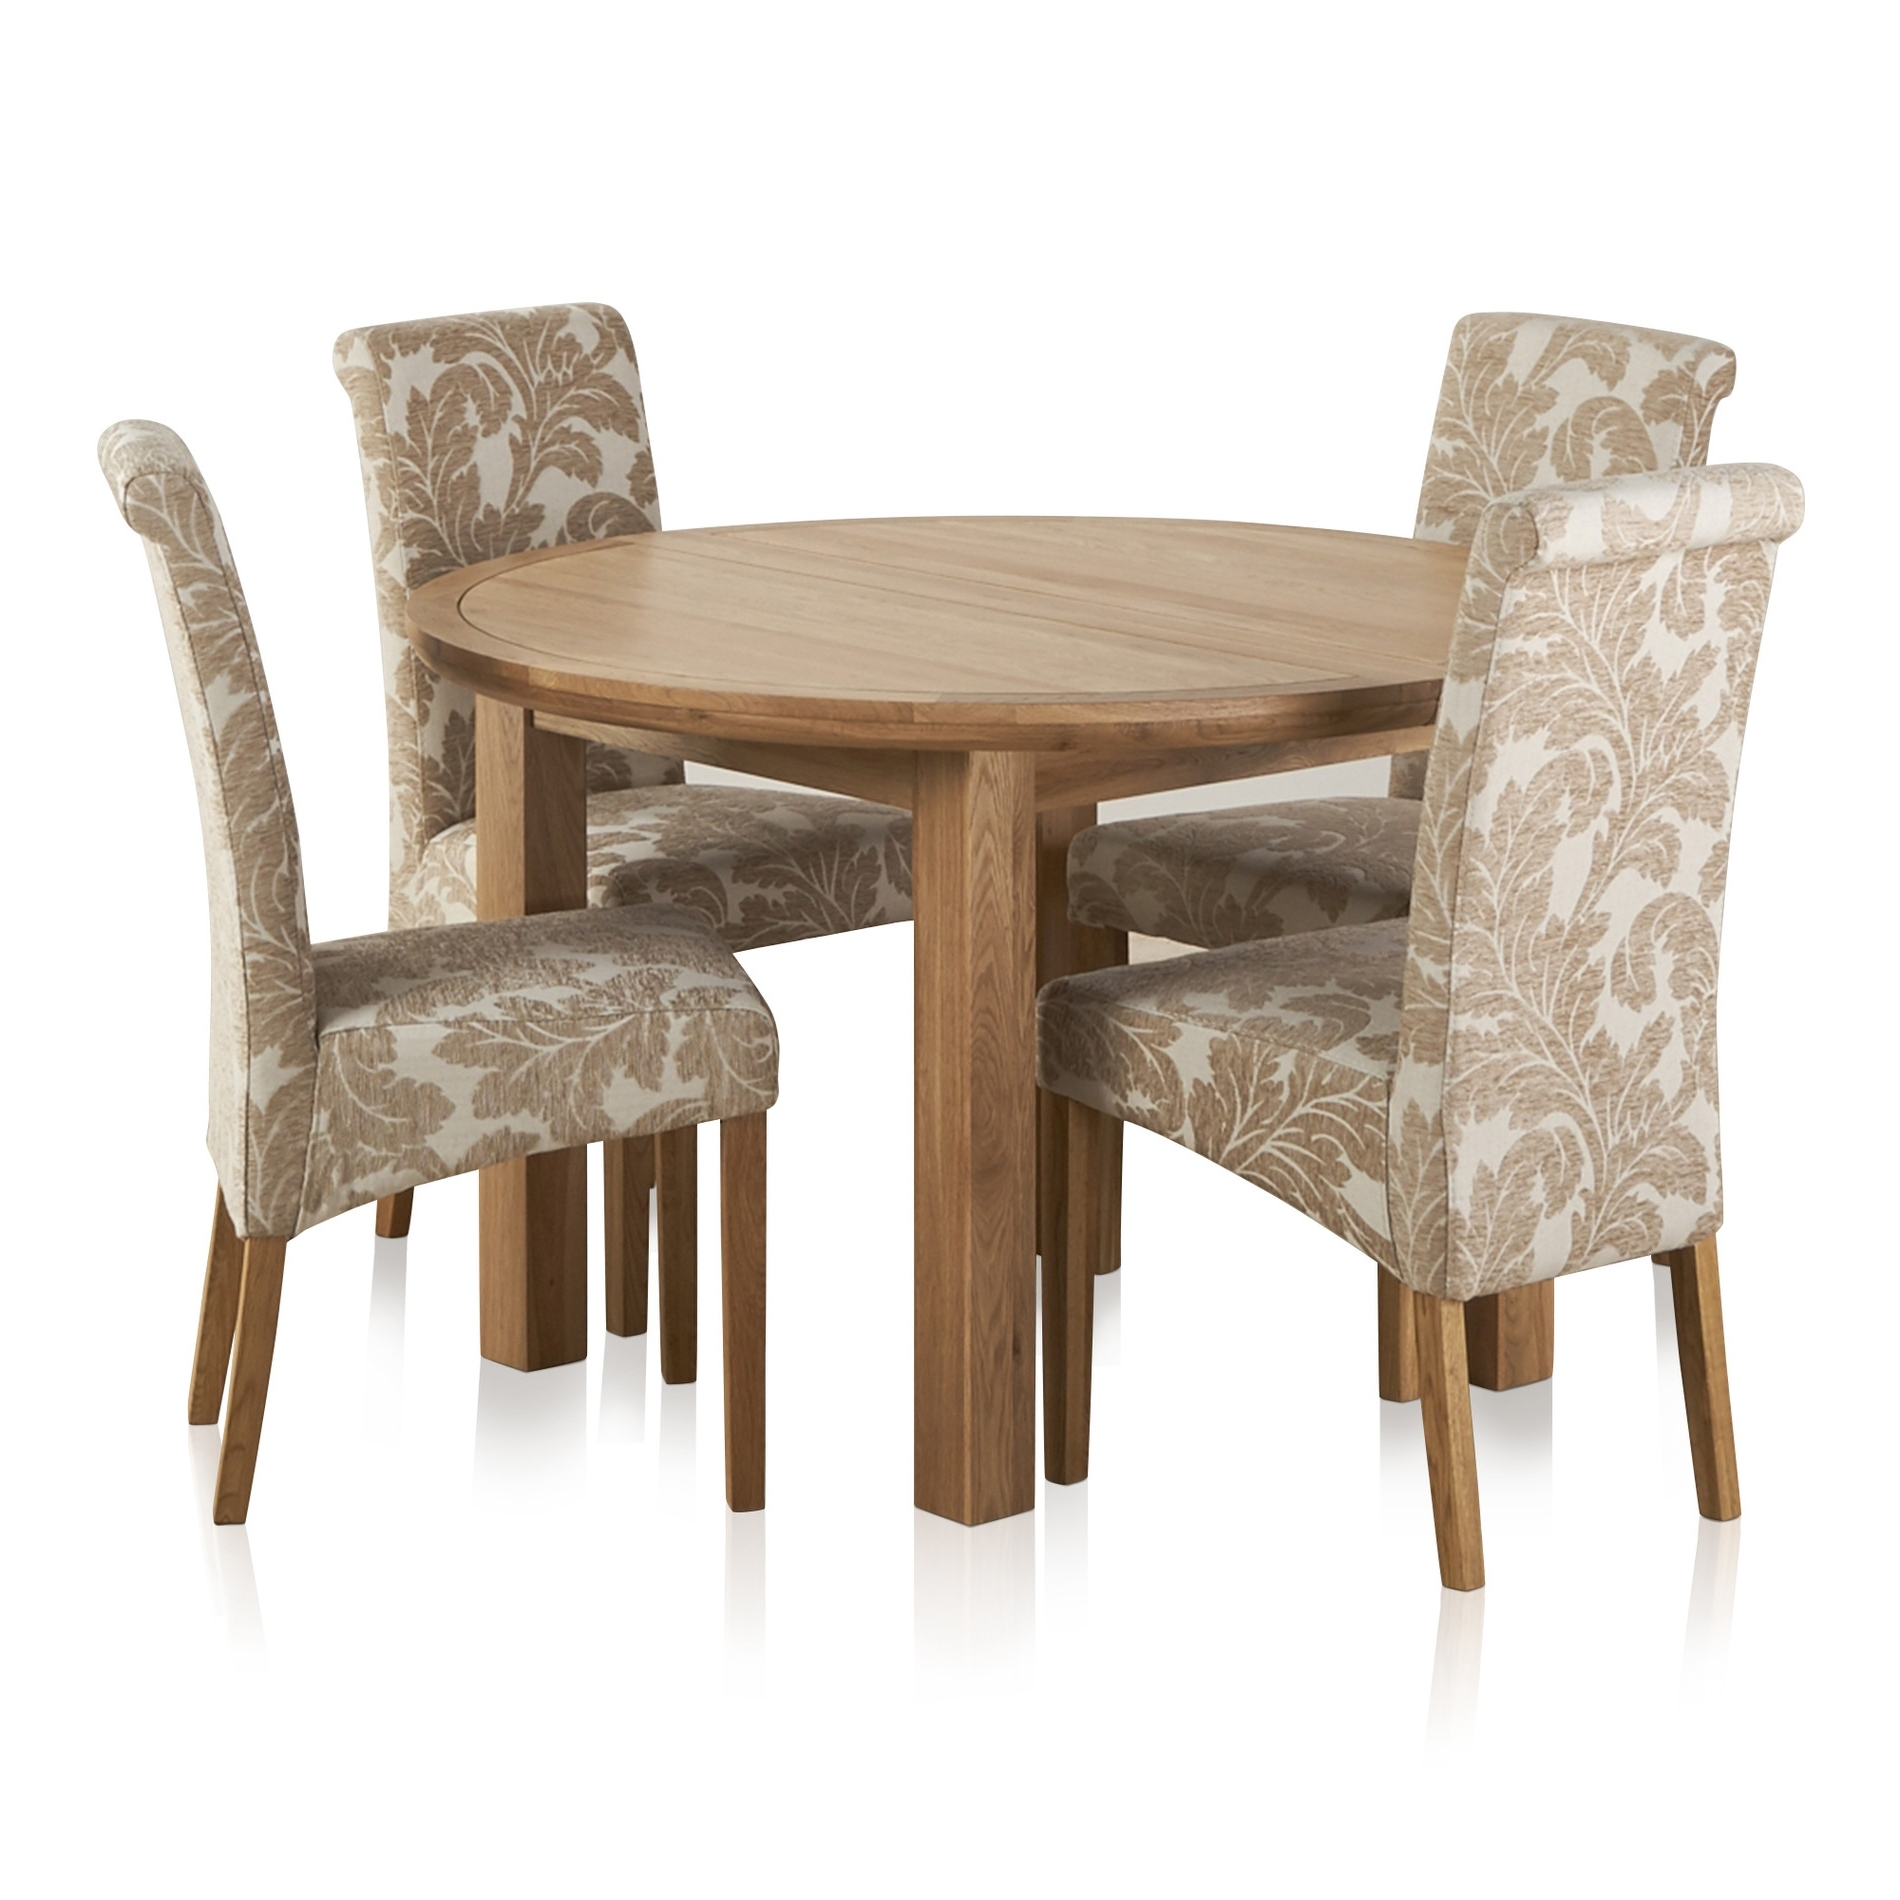 Round Oak Extendable Dining Tables And Chairs With Latest Knightsbridge Oak Dining Set – Round Extending Table + 4 Chairs (View 24 of 25)